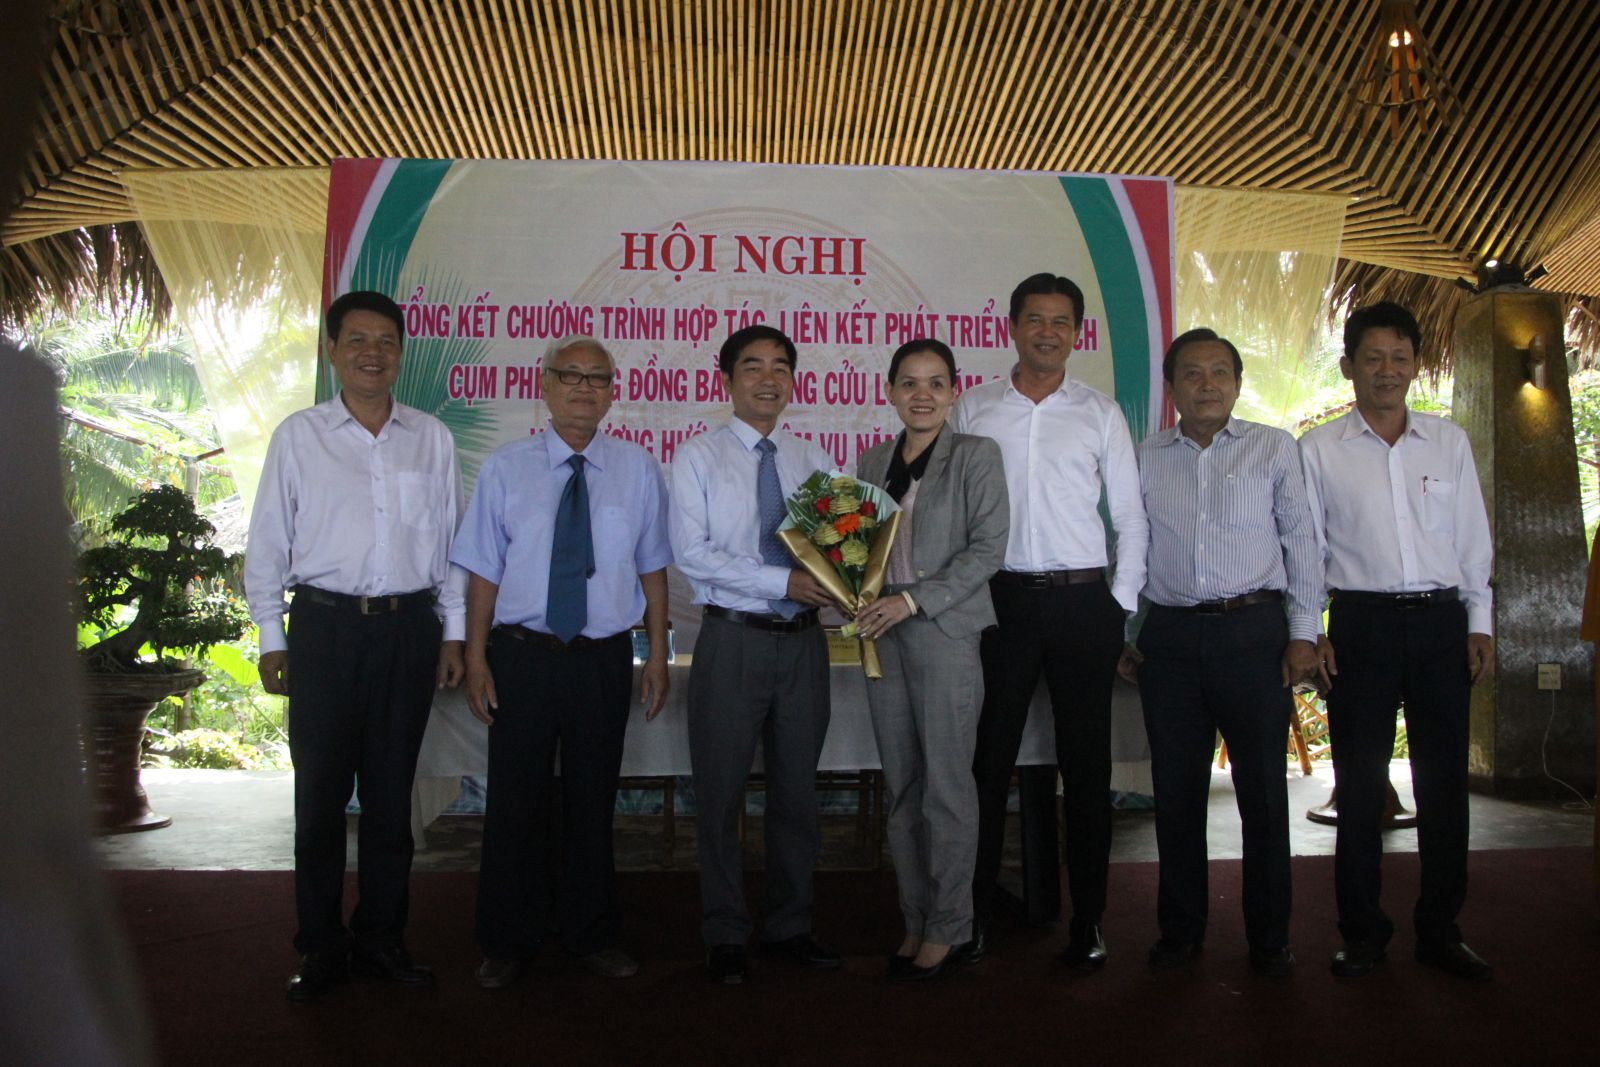 Department of Culture, Sports and Tourism of Ben Tre province transfers the role of cluster leader in 2021 to the Vinh Long Department of  Culture, Sports and Tourism